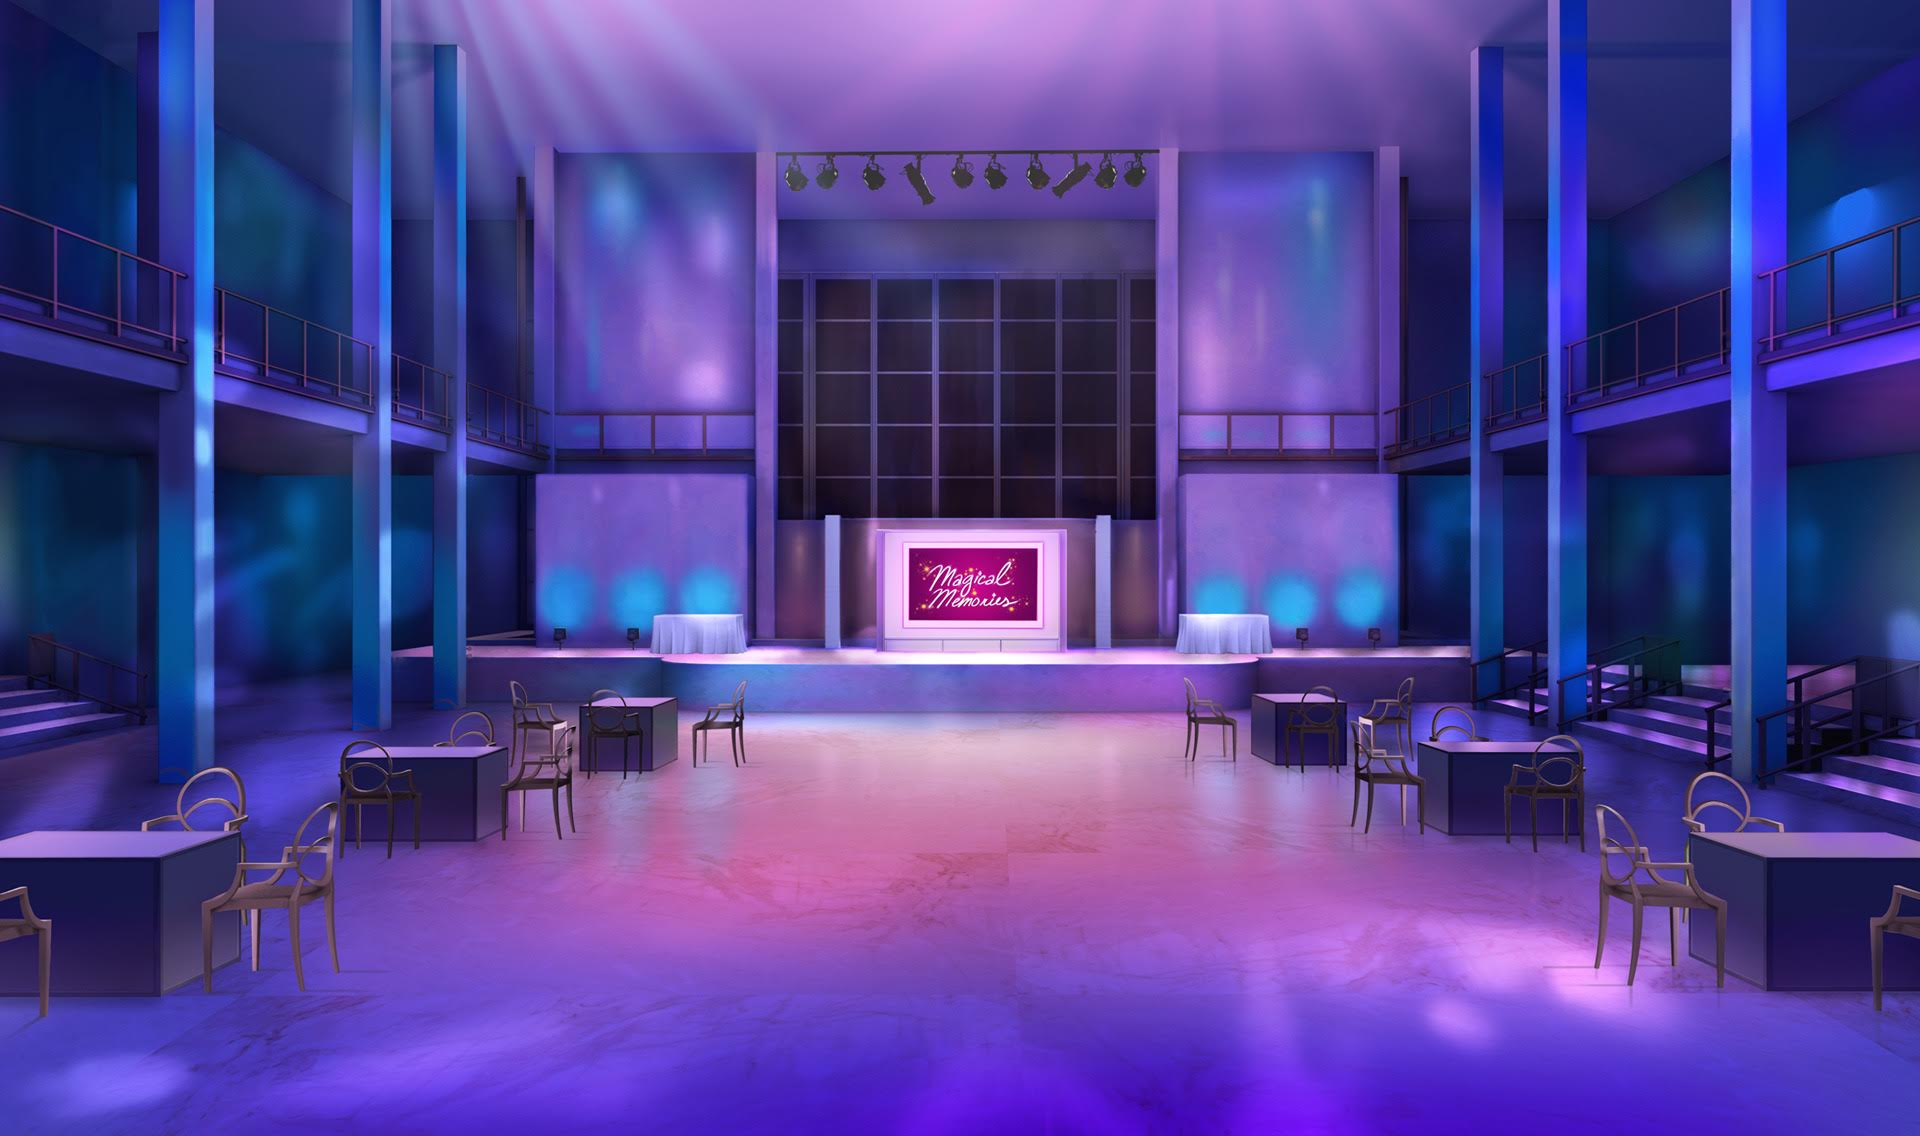 Can You Make The Balcony An Overlay Please Art Resources Episode Forums The site owner hides the web page description. balcony an overlay please